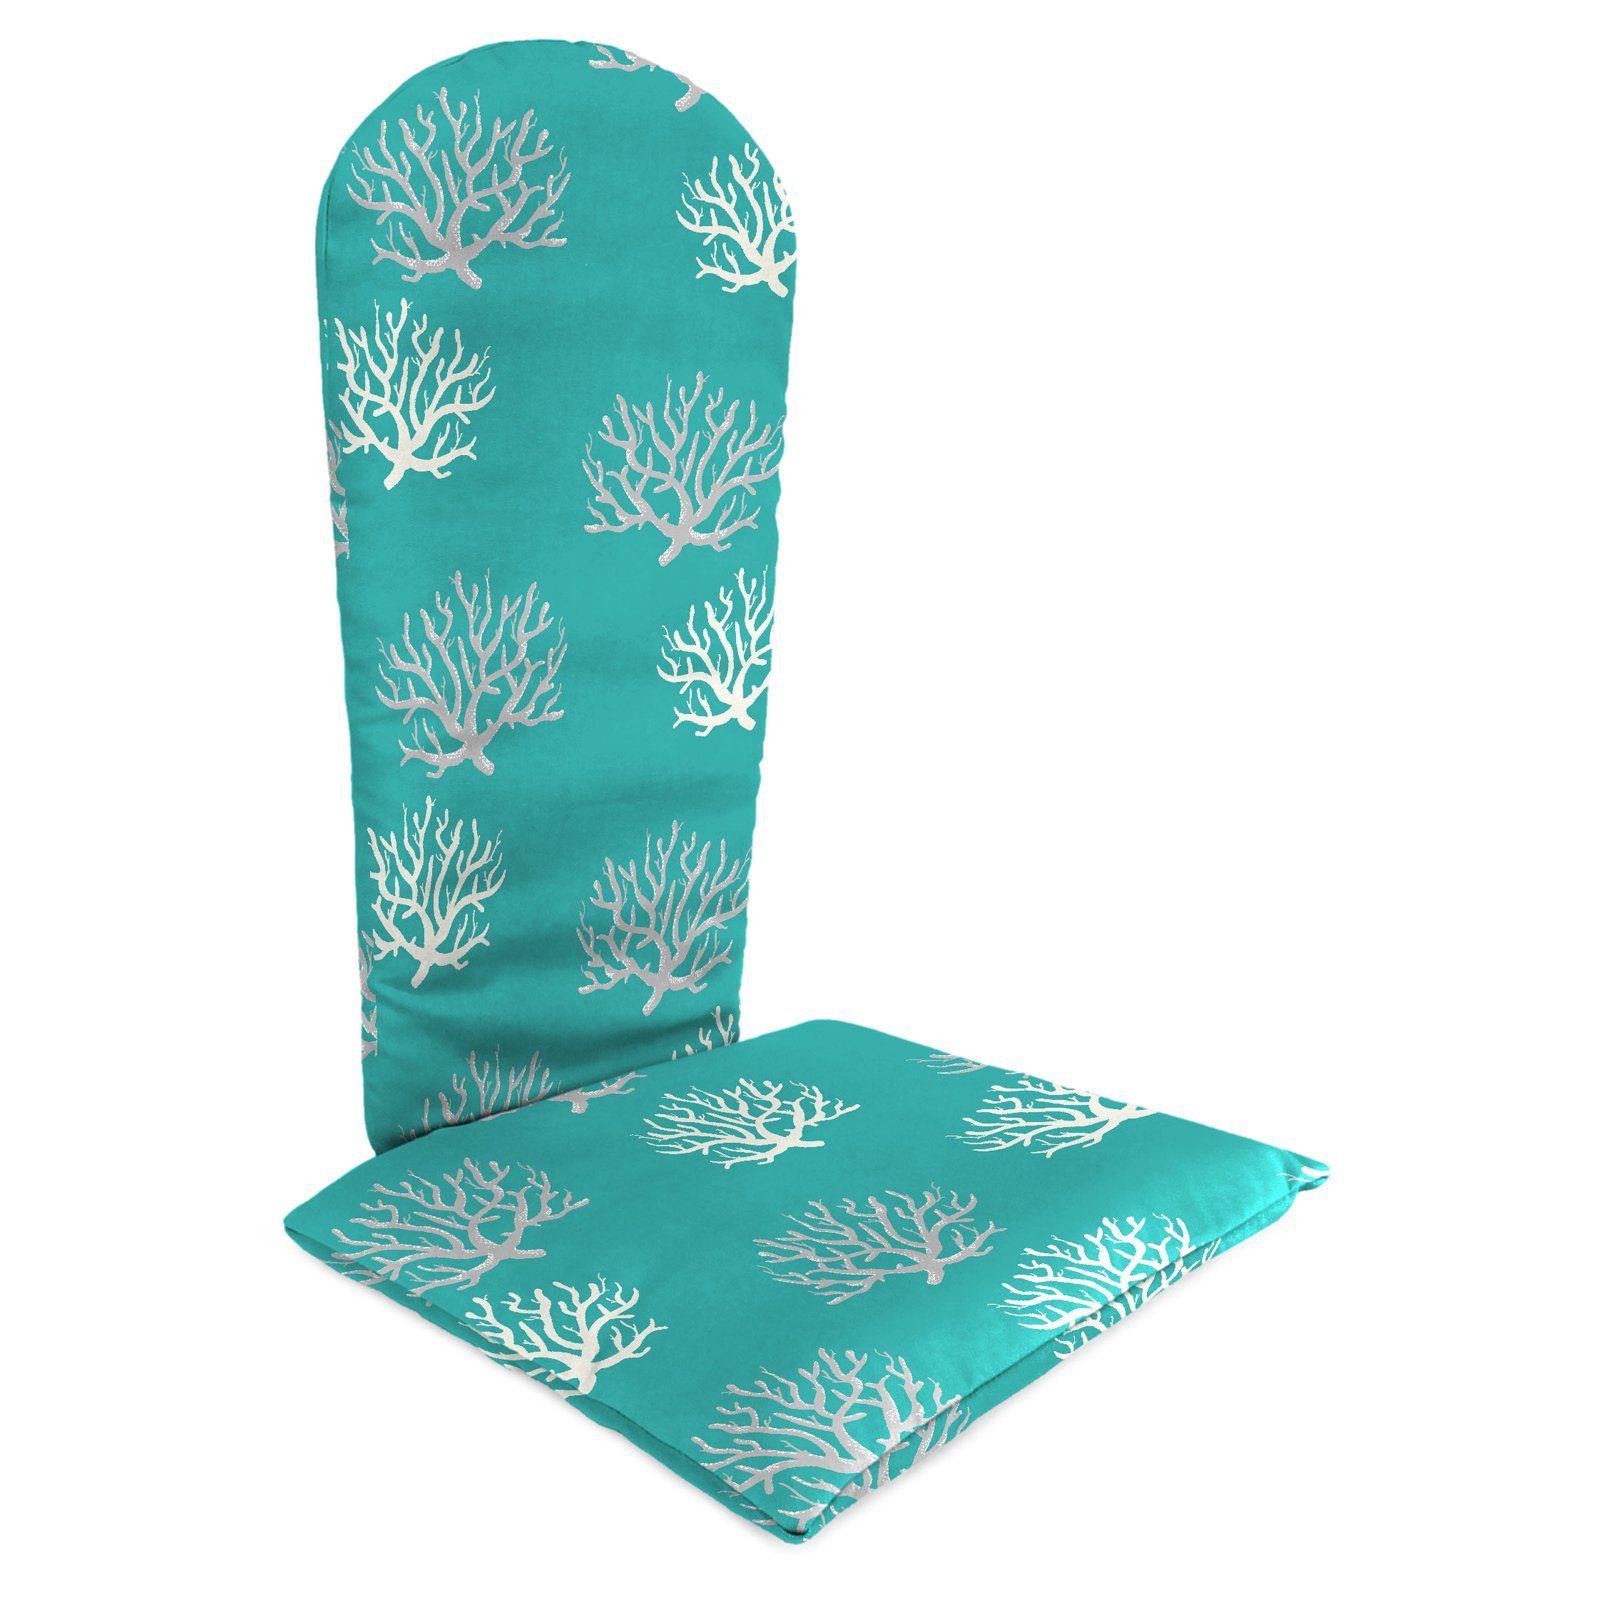 Jordan Manufacturing Knife Edge Outdoor Adirondack Chair Cushion - Isadella Ocean